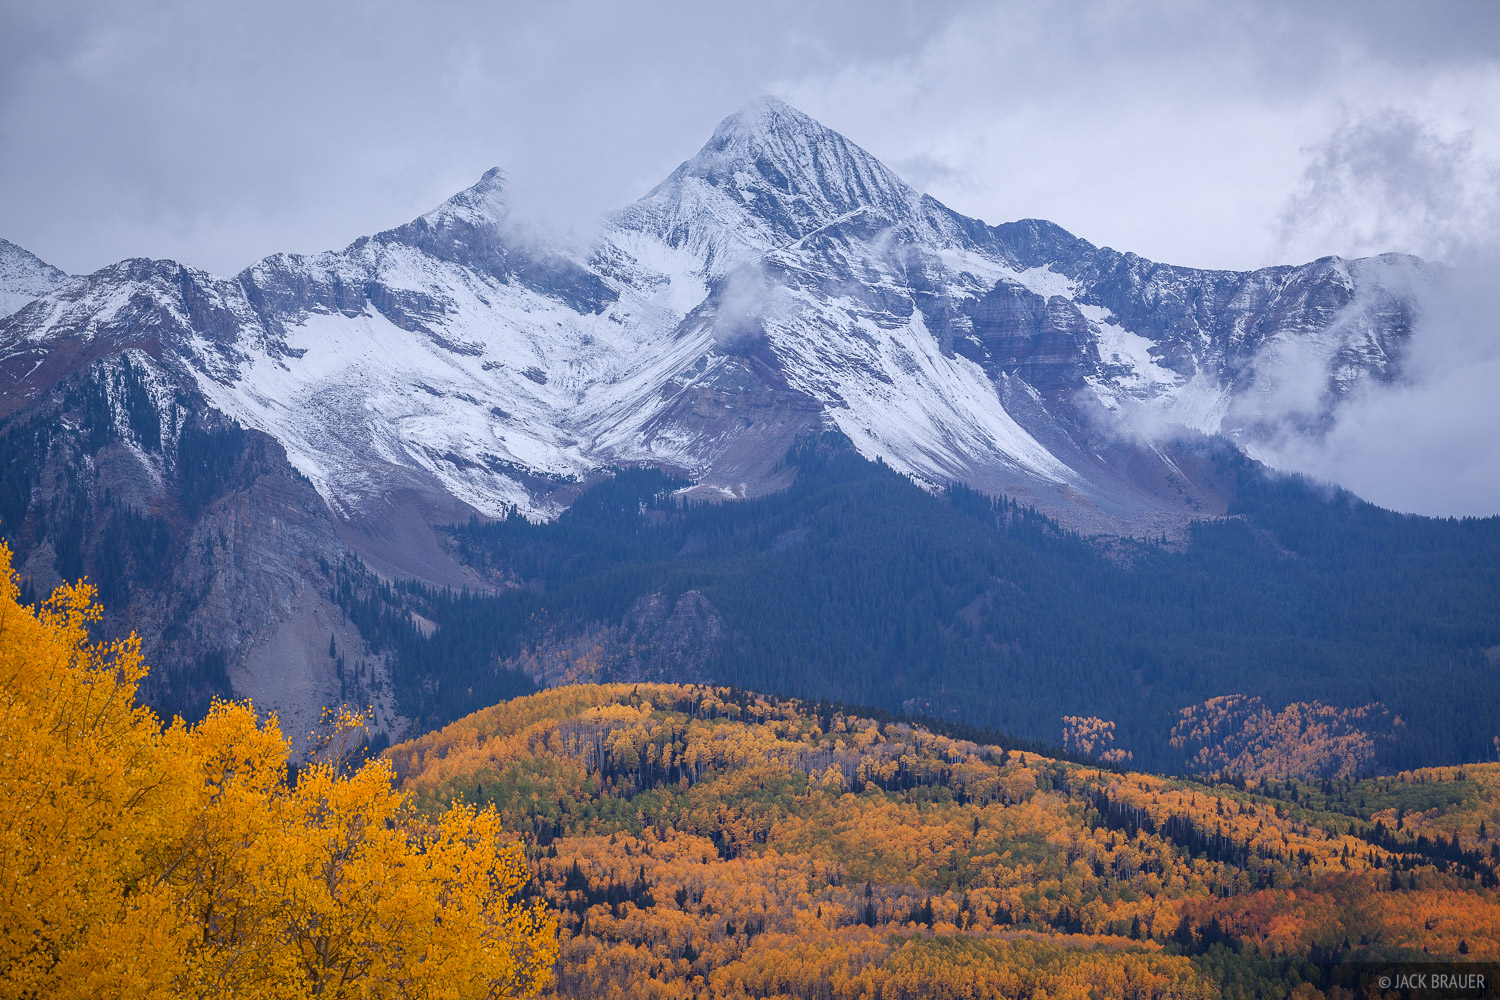 Colorado, San Juan Mountains, Wilson Peak, autumn, fall, San Miguel Range, photo